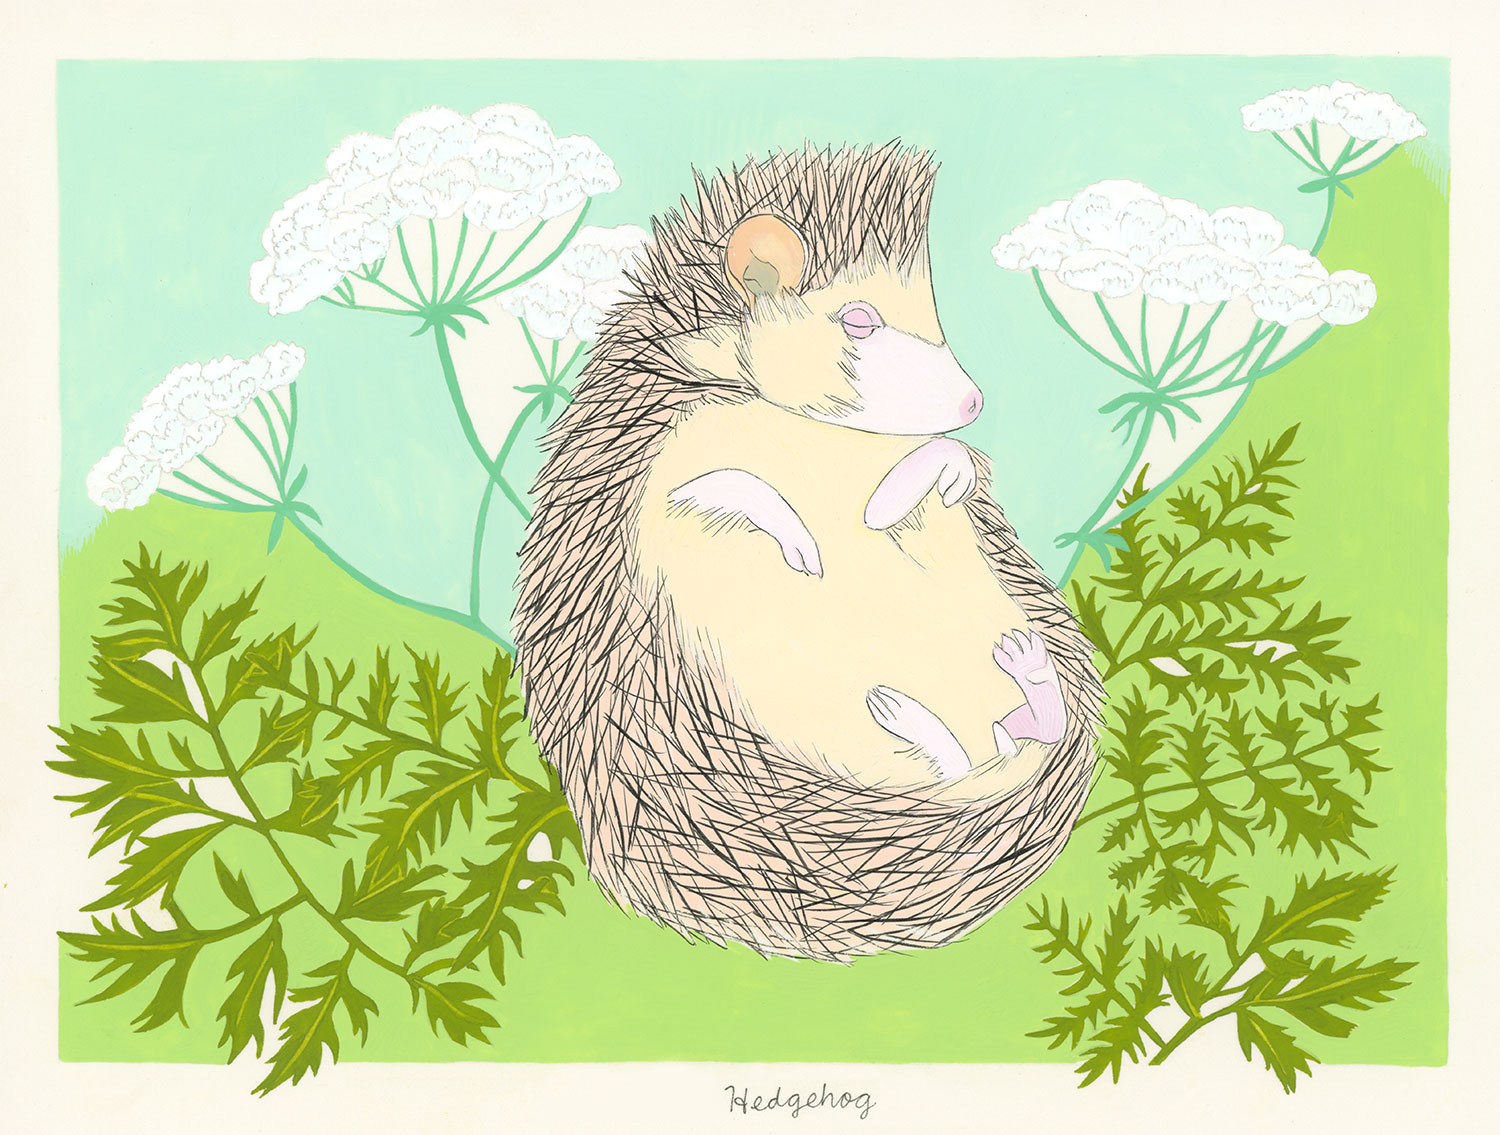 Hedgehog and Hemlock (for the one named Darcy)